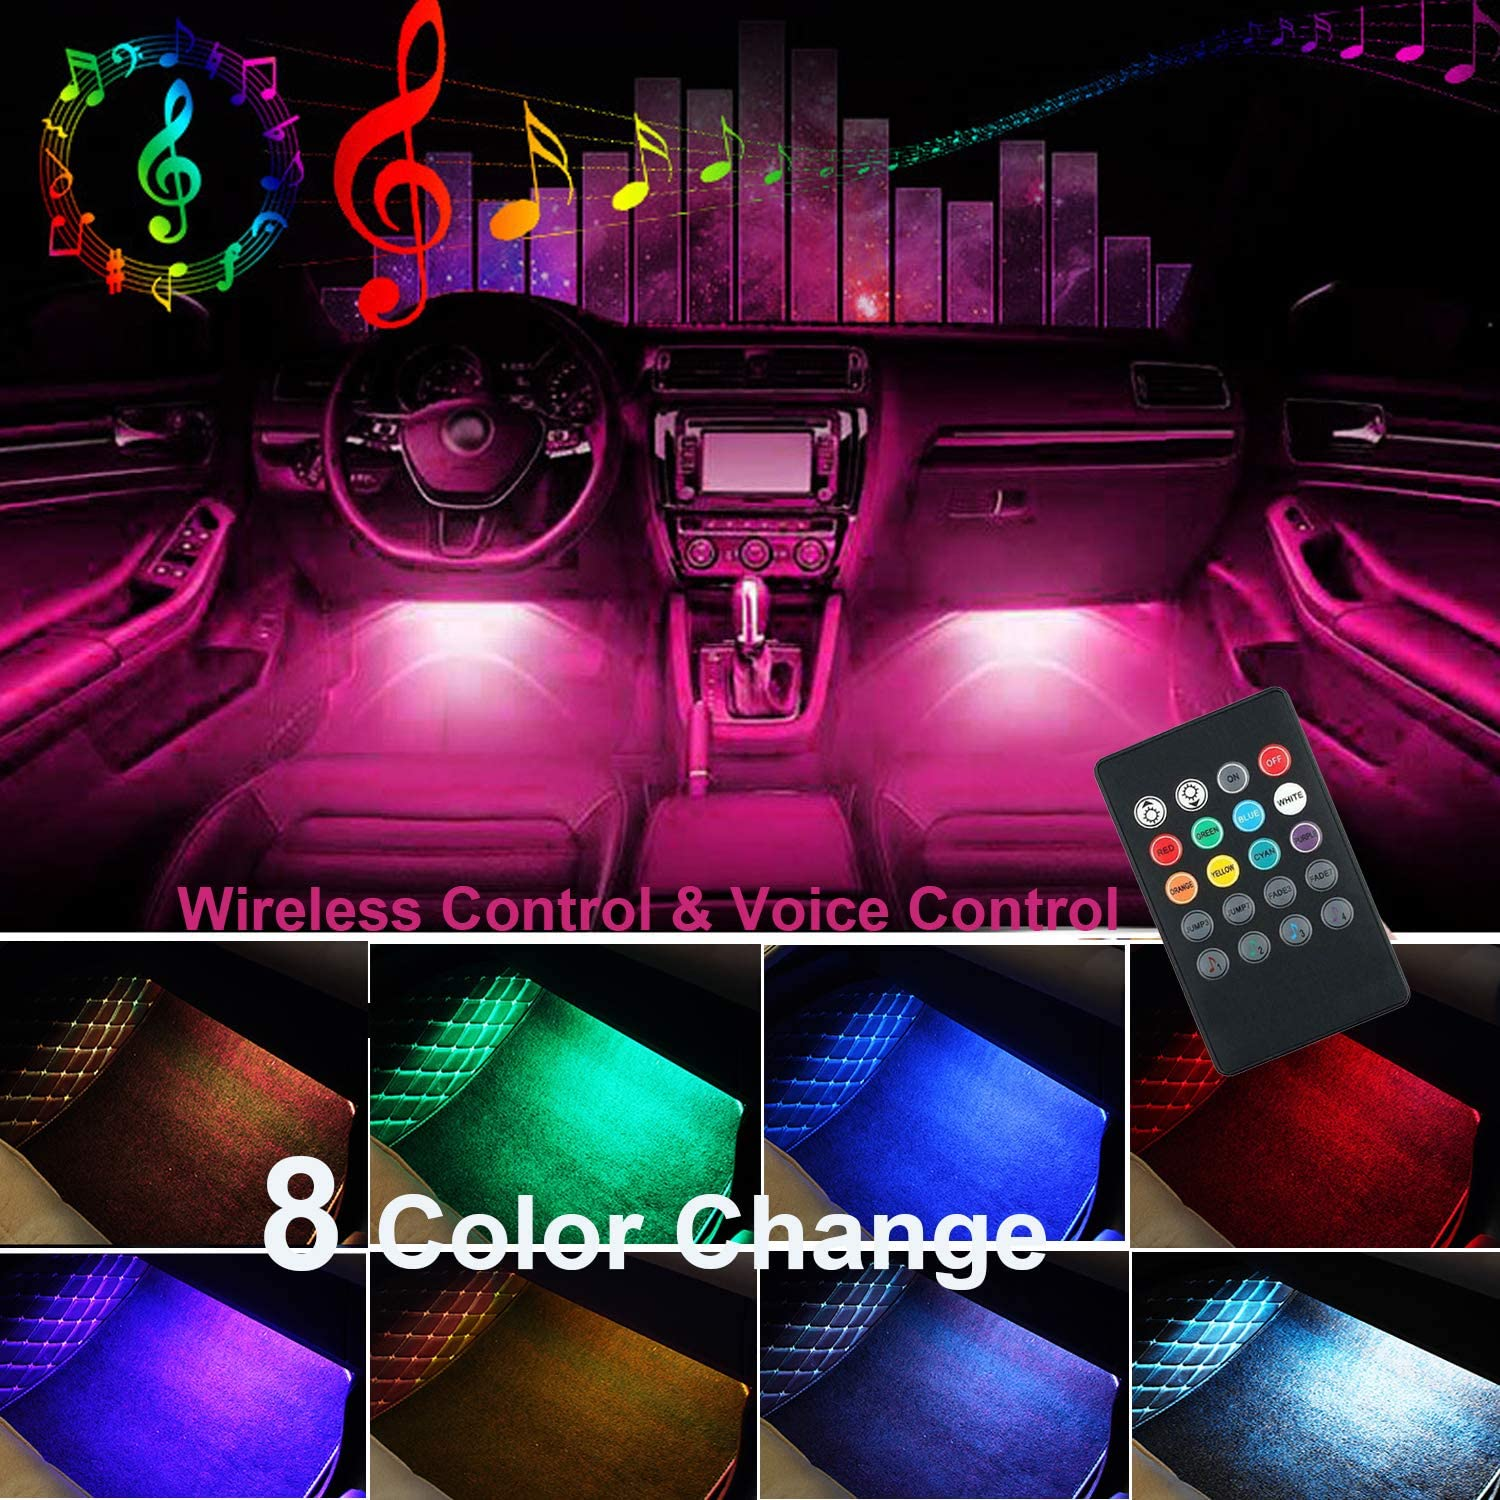 USB Port Multi-Colors with Sound Active Function,with USB Port and Remote Control for Car//TV Backlight//DIY Home Decorations Car Interior Led Strip Light,HUAYT 4PCS 48 LED Automotive light kits